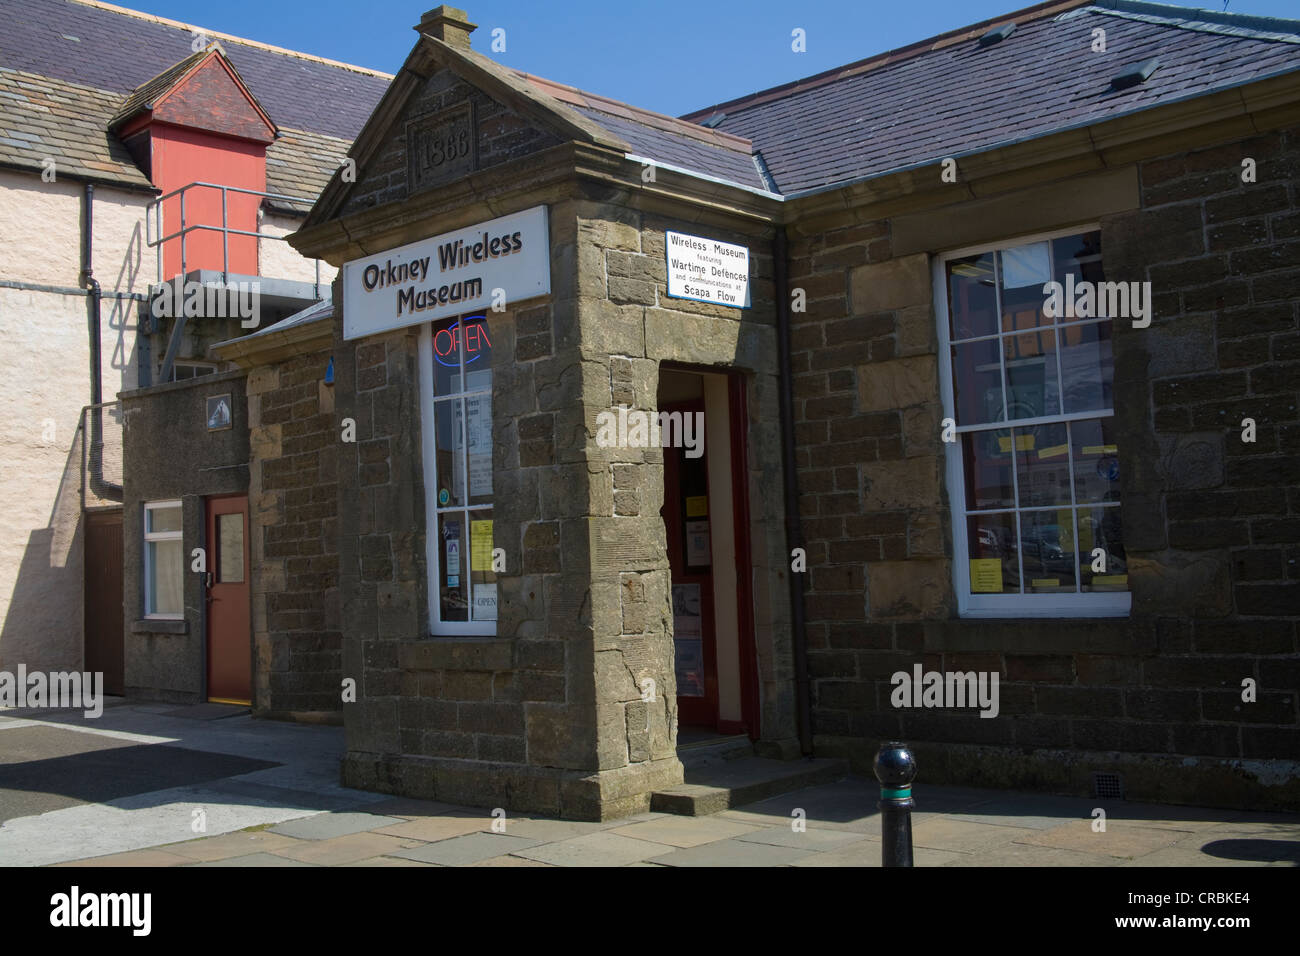 Kirkwall Orkney Mainland Islands Scotland UK Orkney Wireless Museum building dated 1866 houses collection of domestic - Stock Image